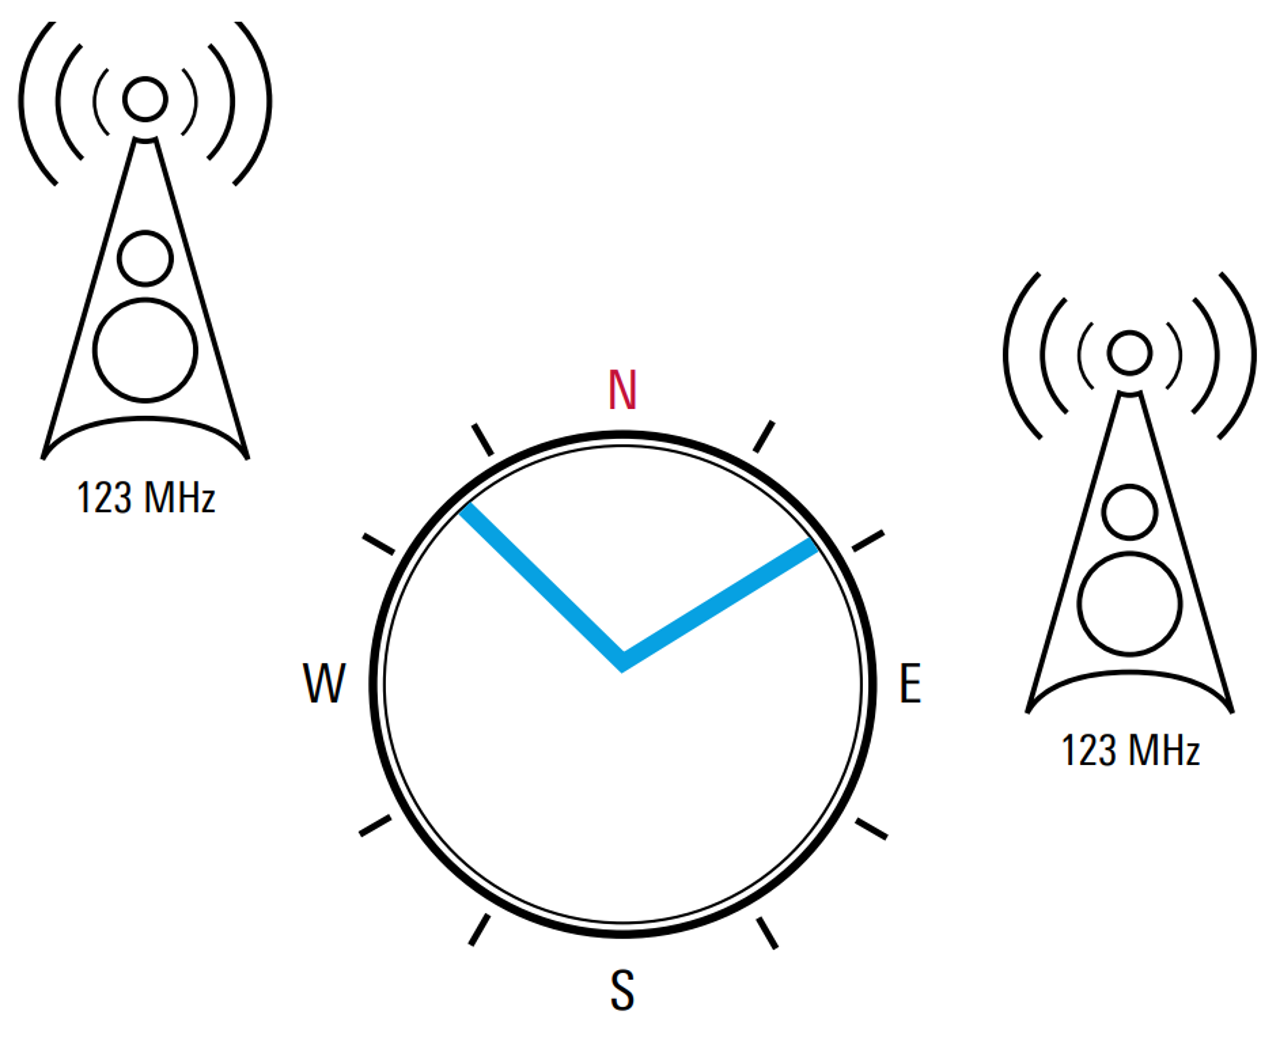 Co-channel interference of two transmitters